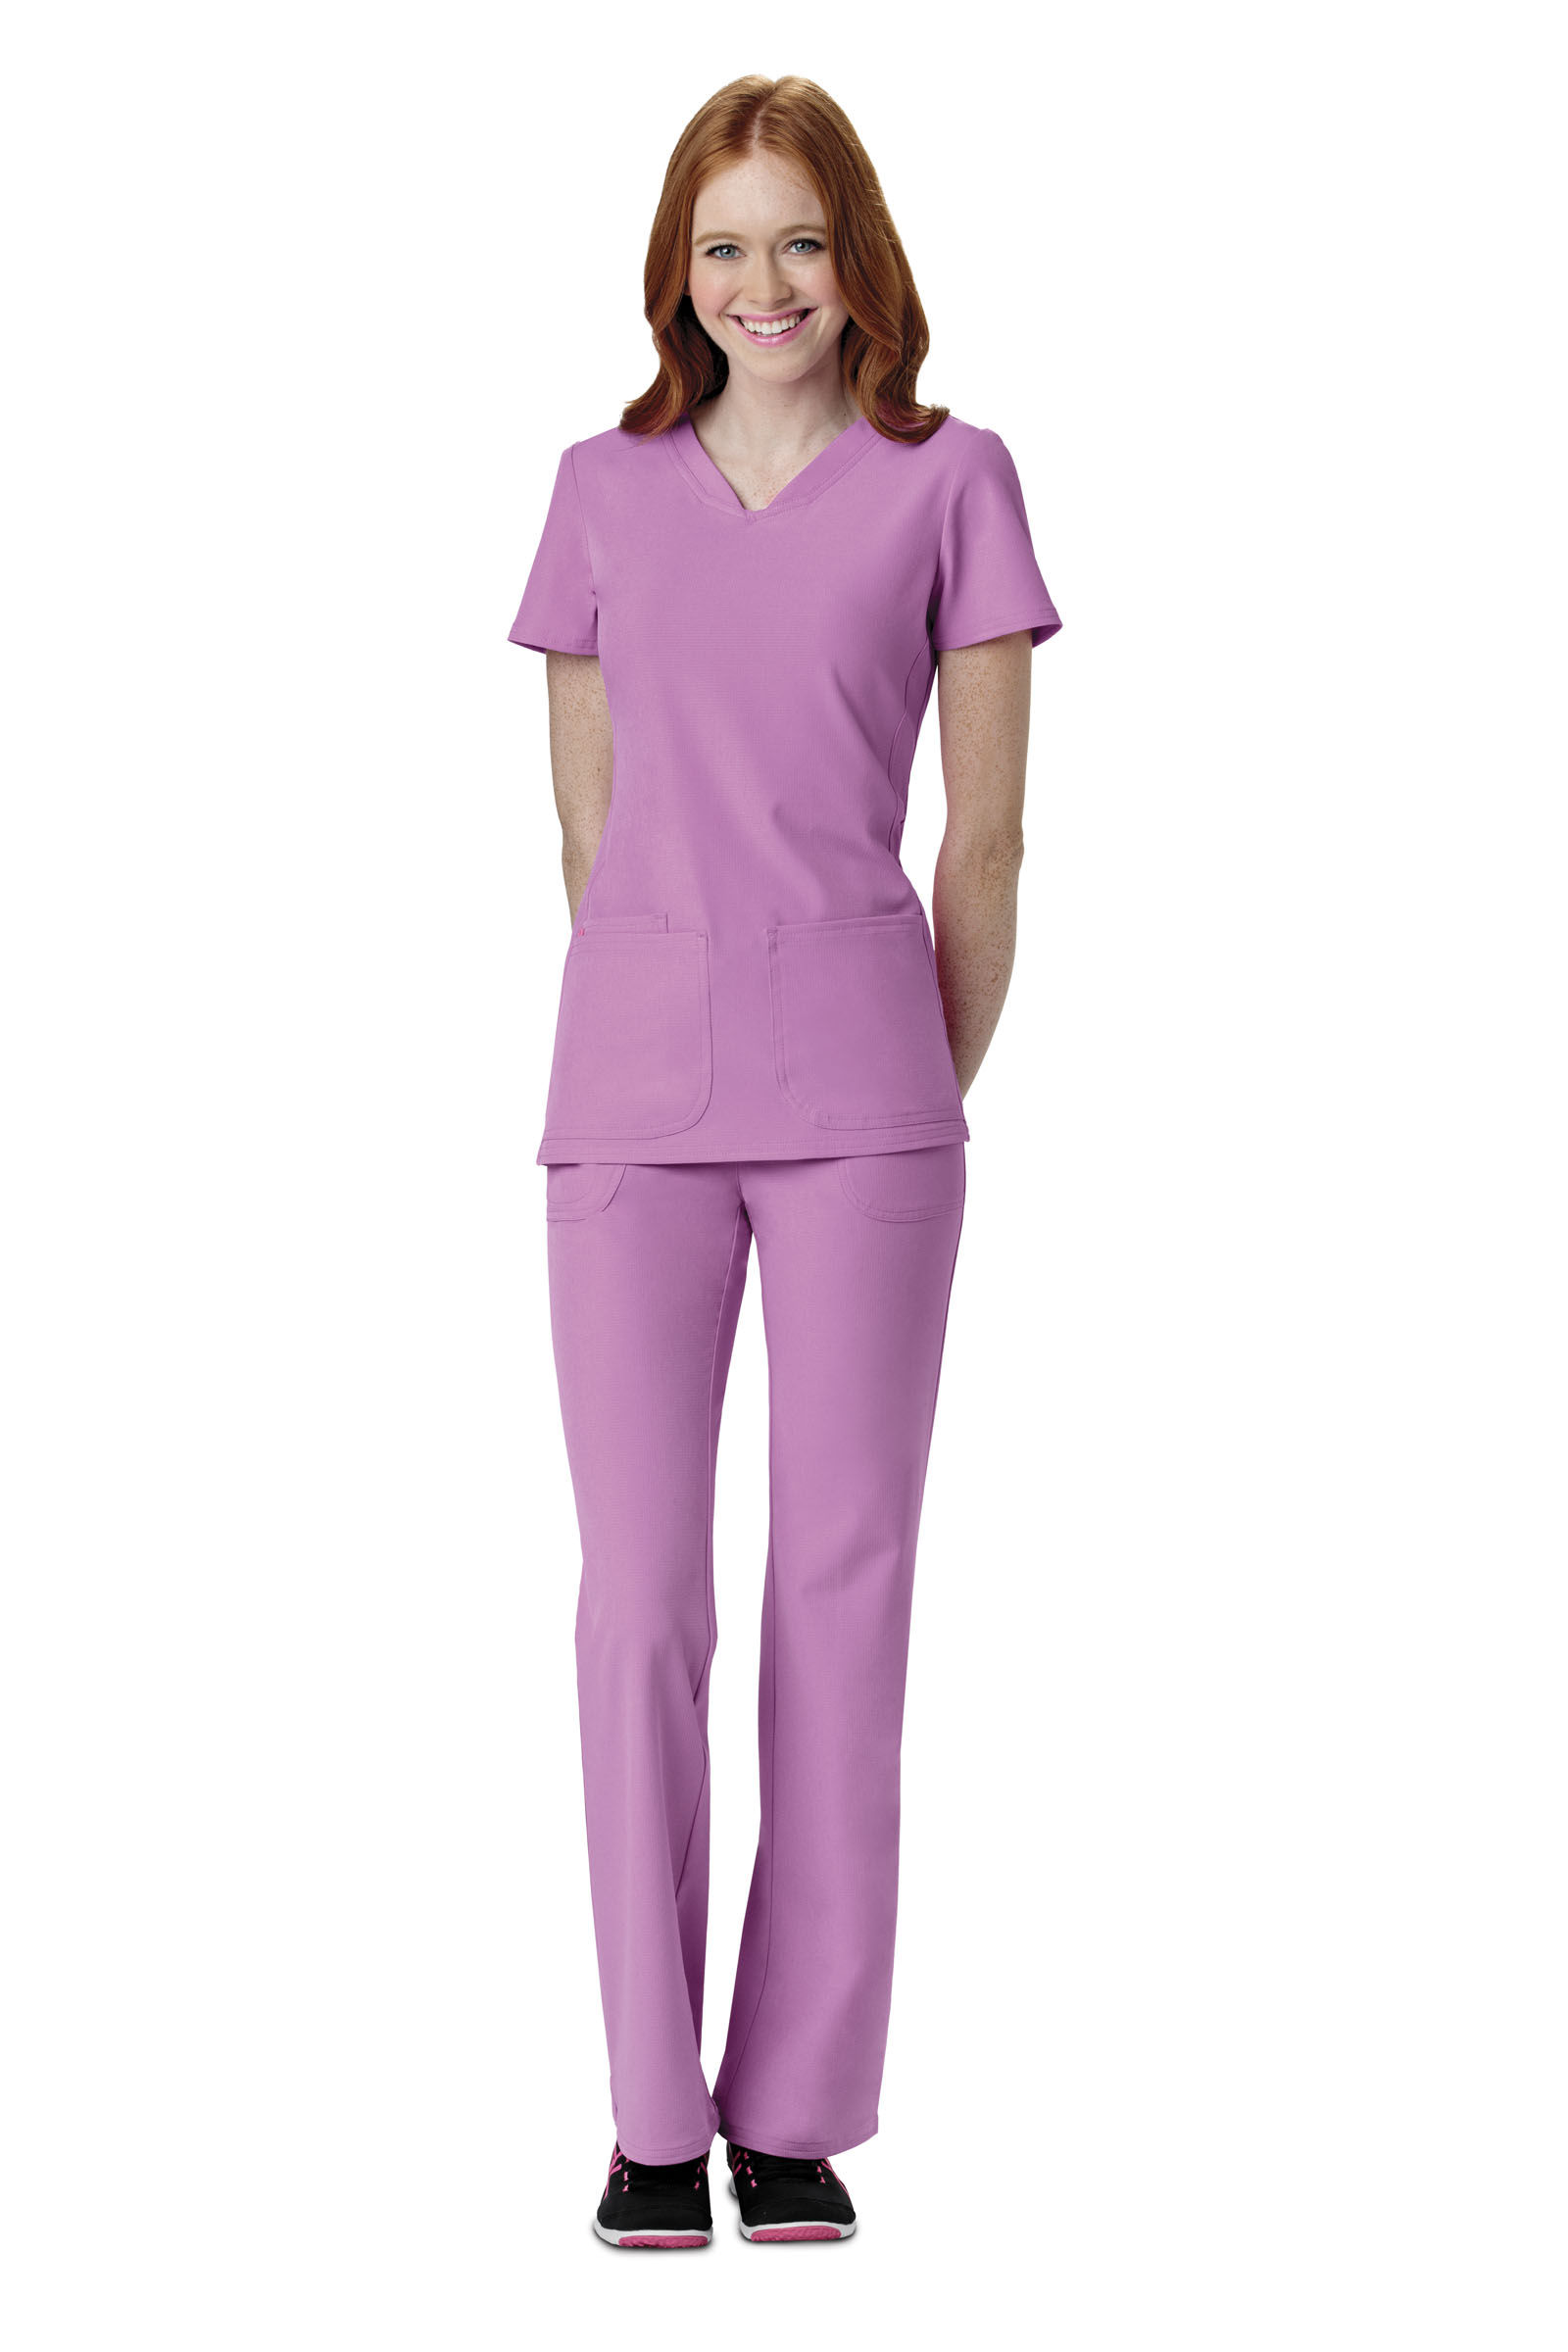 Style lines give the NRG by Barco Uniforms Women's Cargo Scrub Pant a flattering silhouette. Multiple pockets and the adjustable waistband offer the features you love with an updated look.